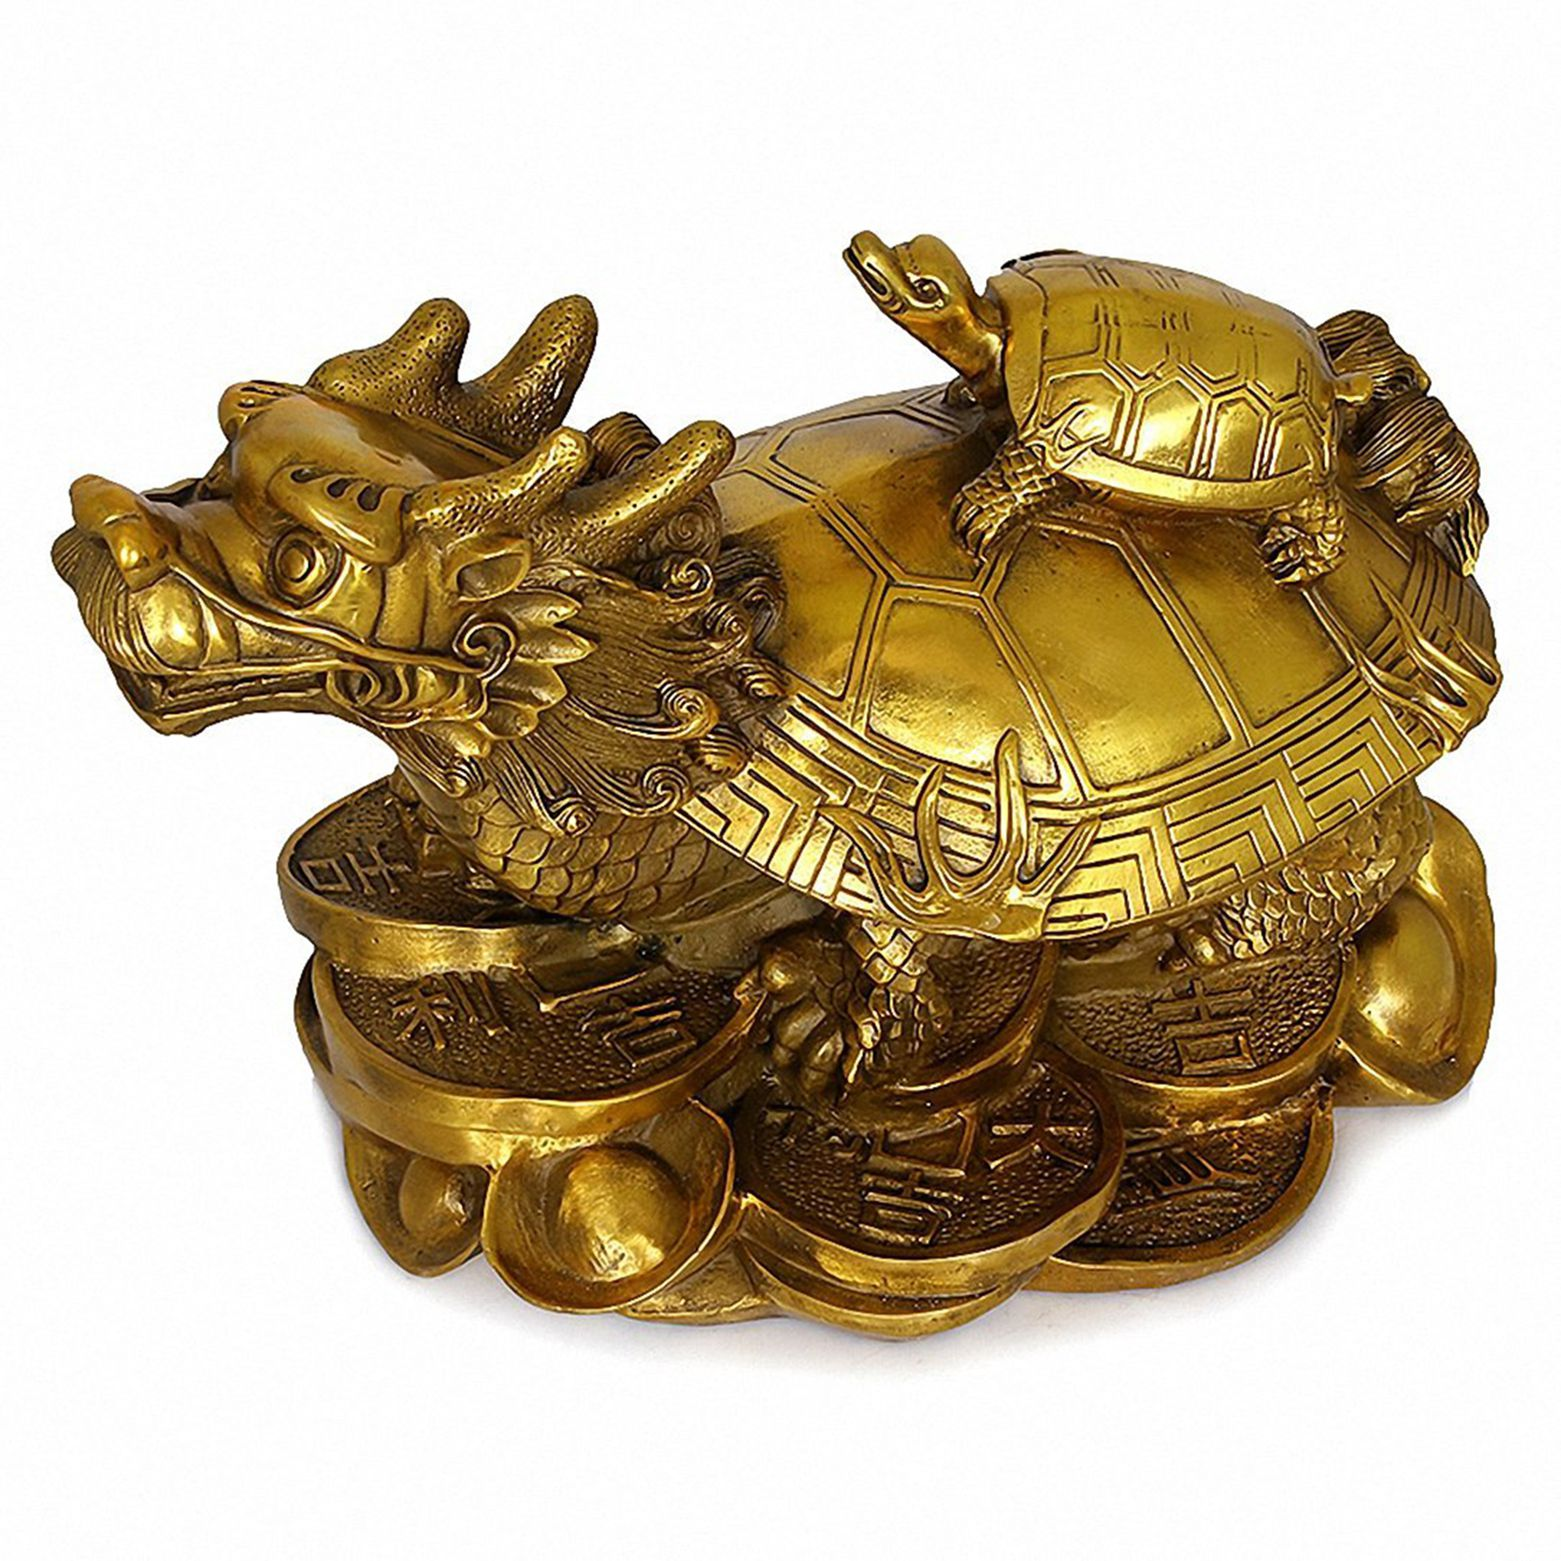 Feng Shui Use Of The Dragon Turtle Symbol